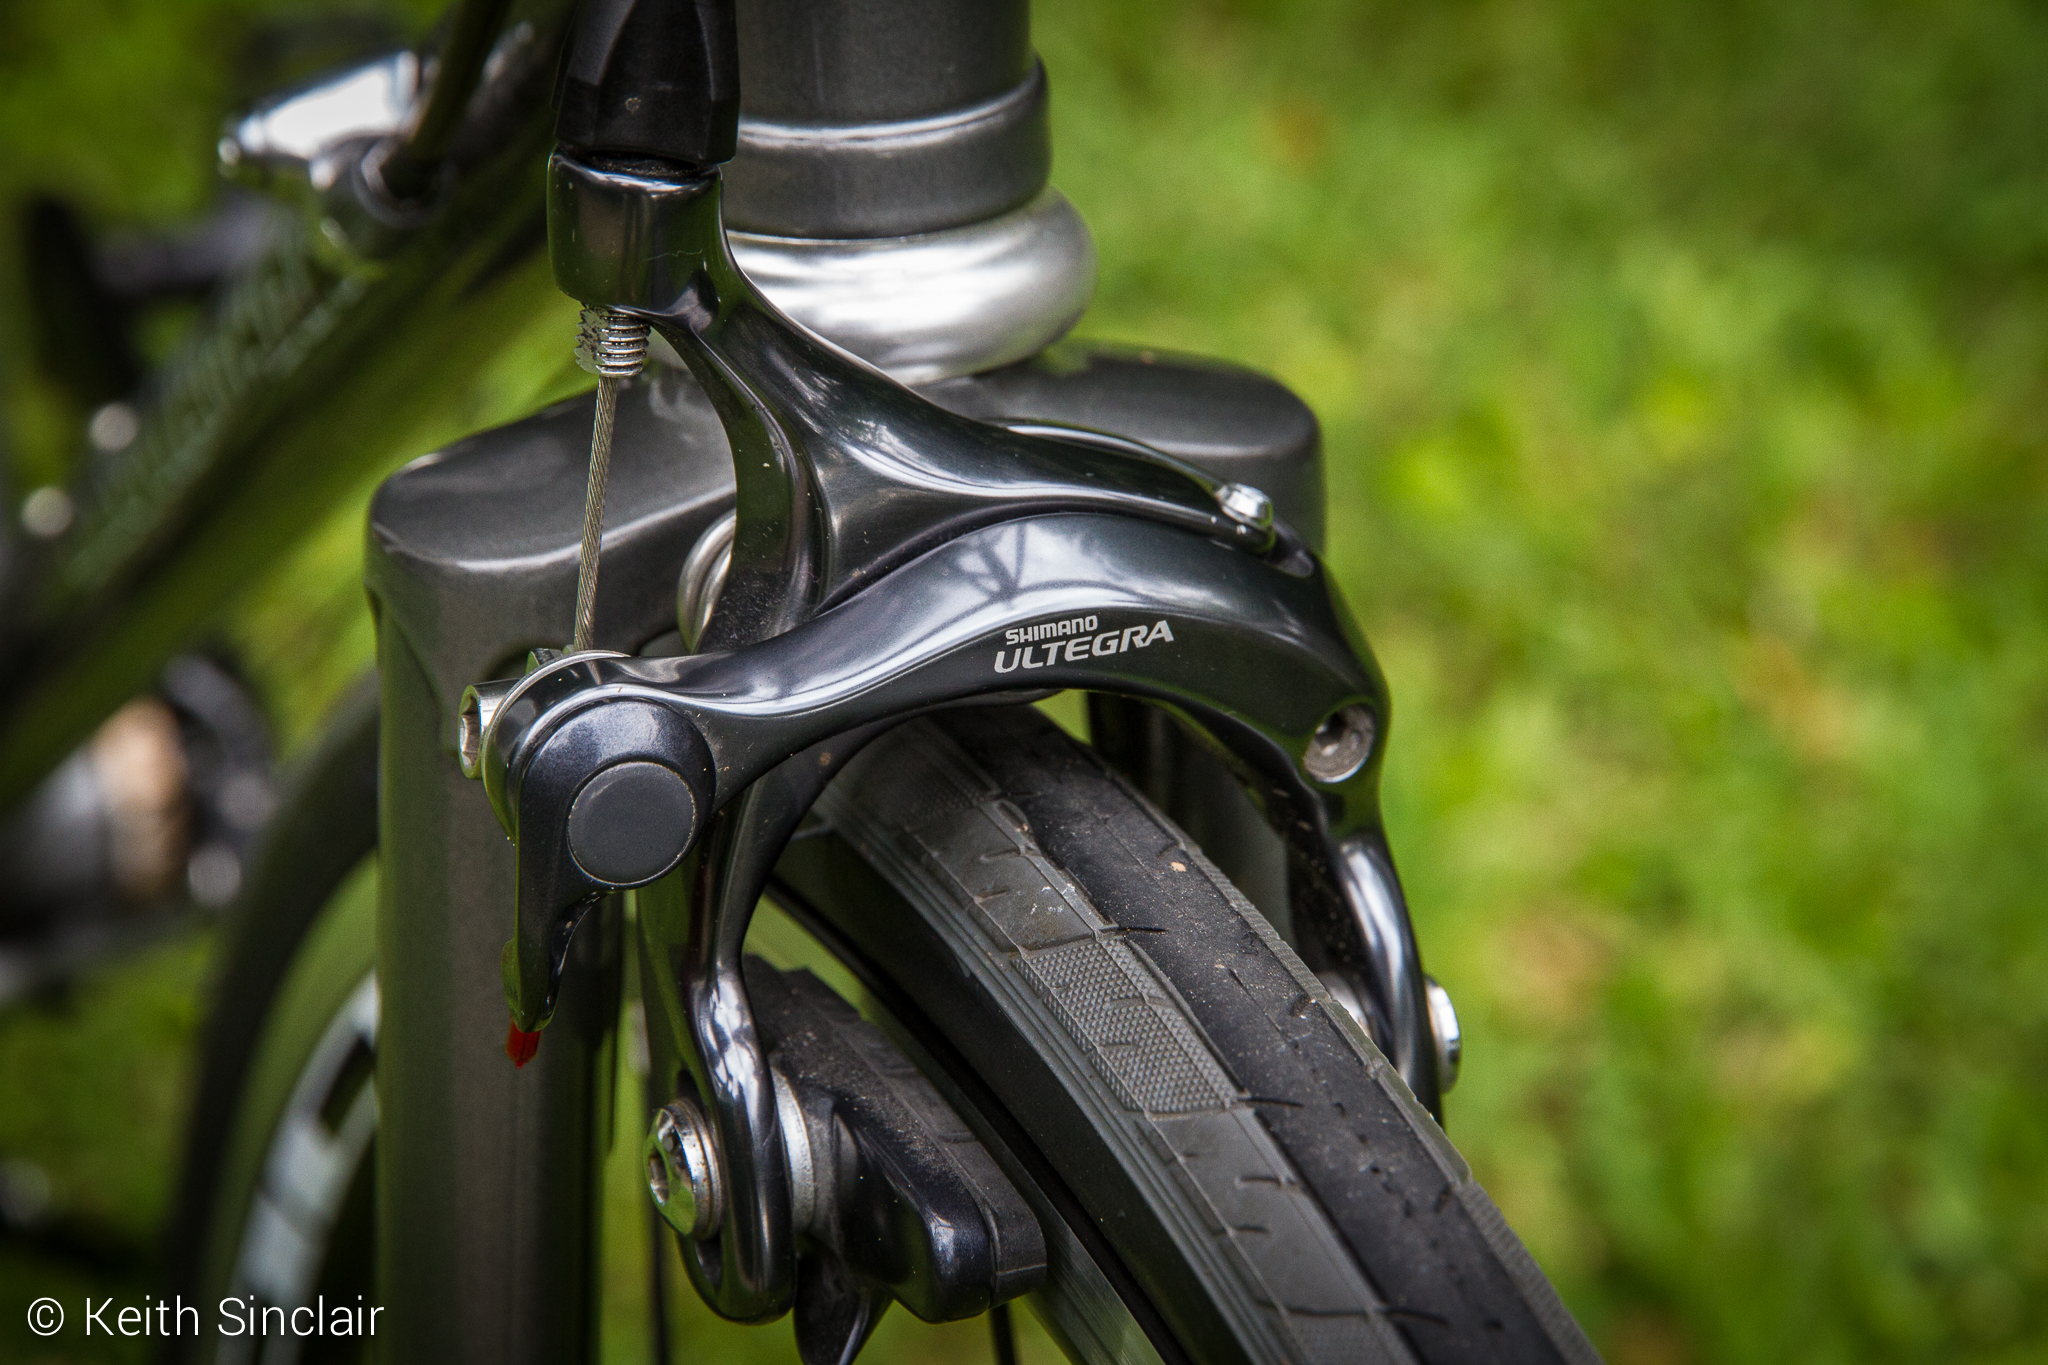 Shimano Ultegra Front Brakes, Stronglight Headset